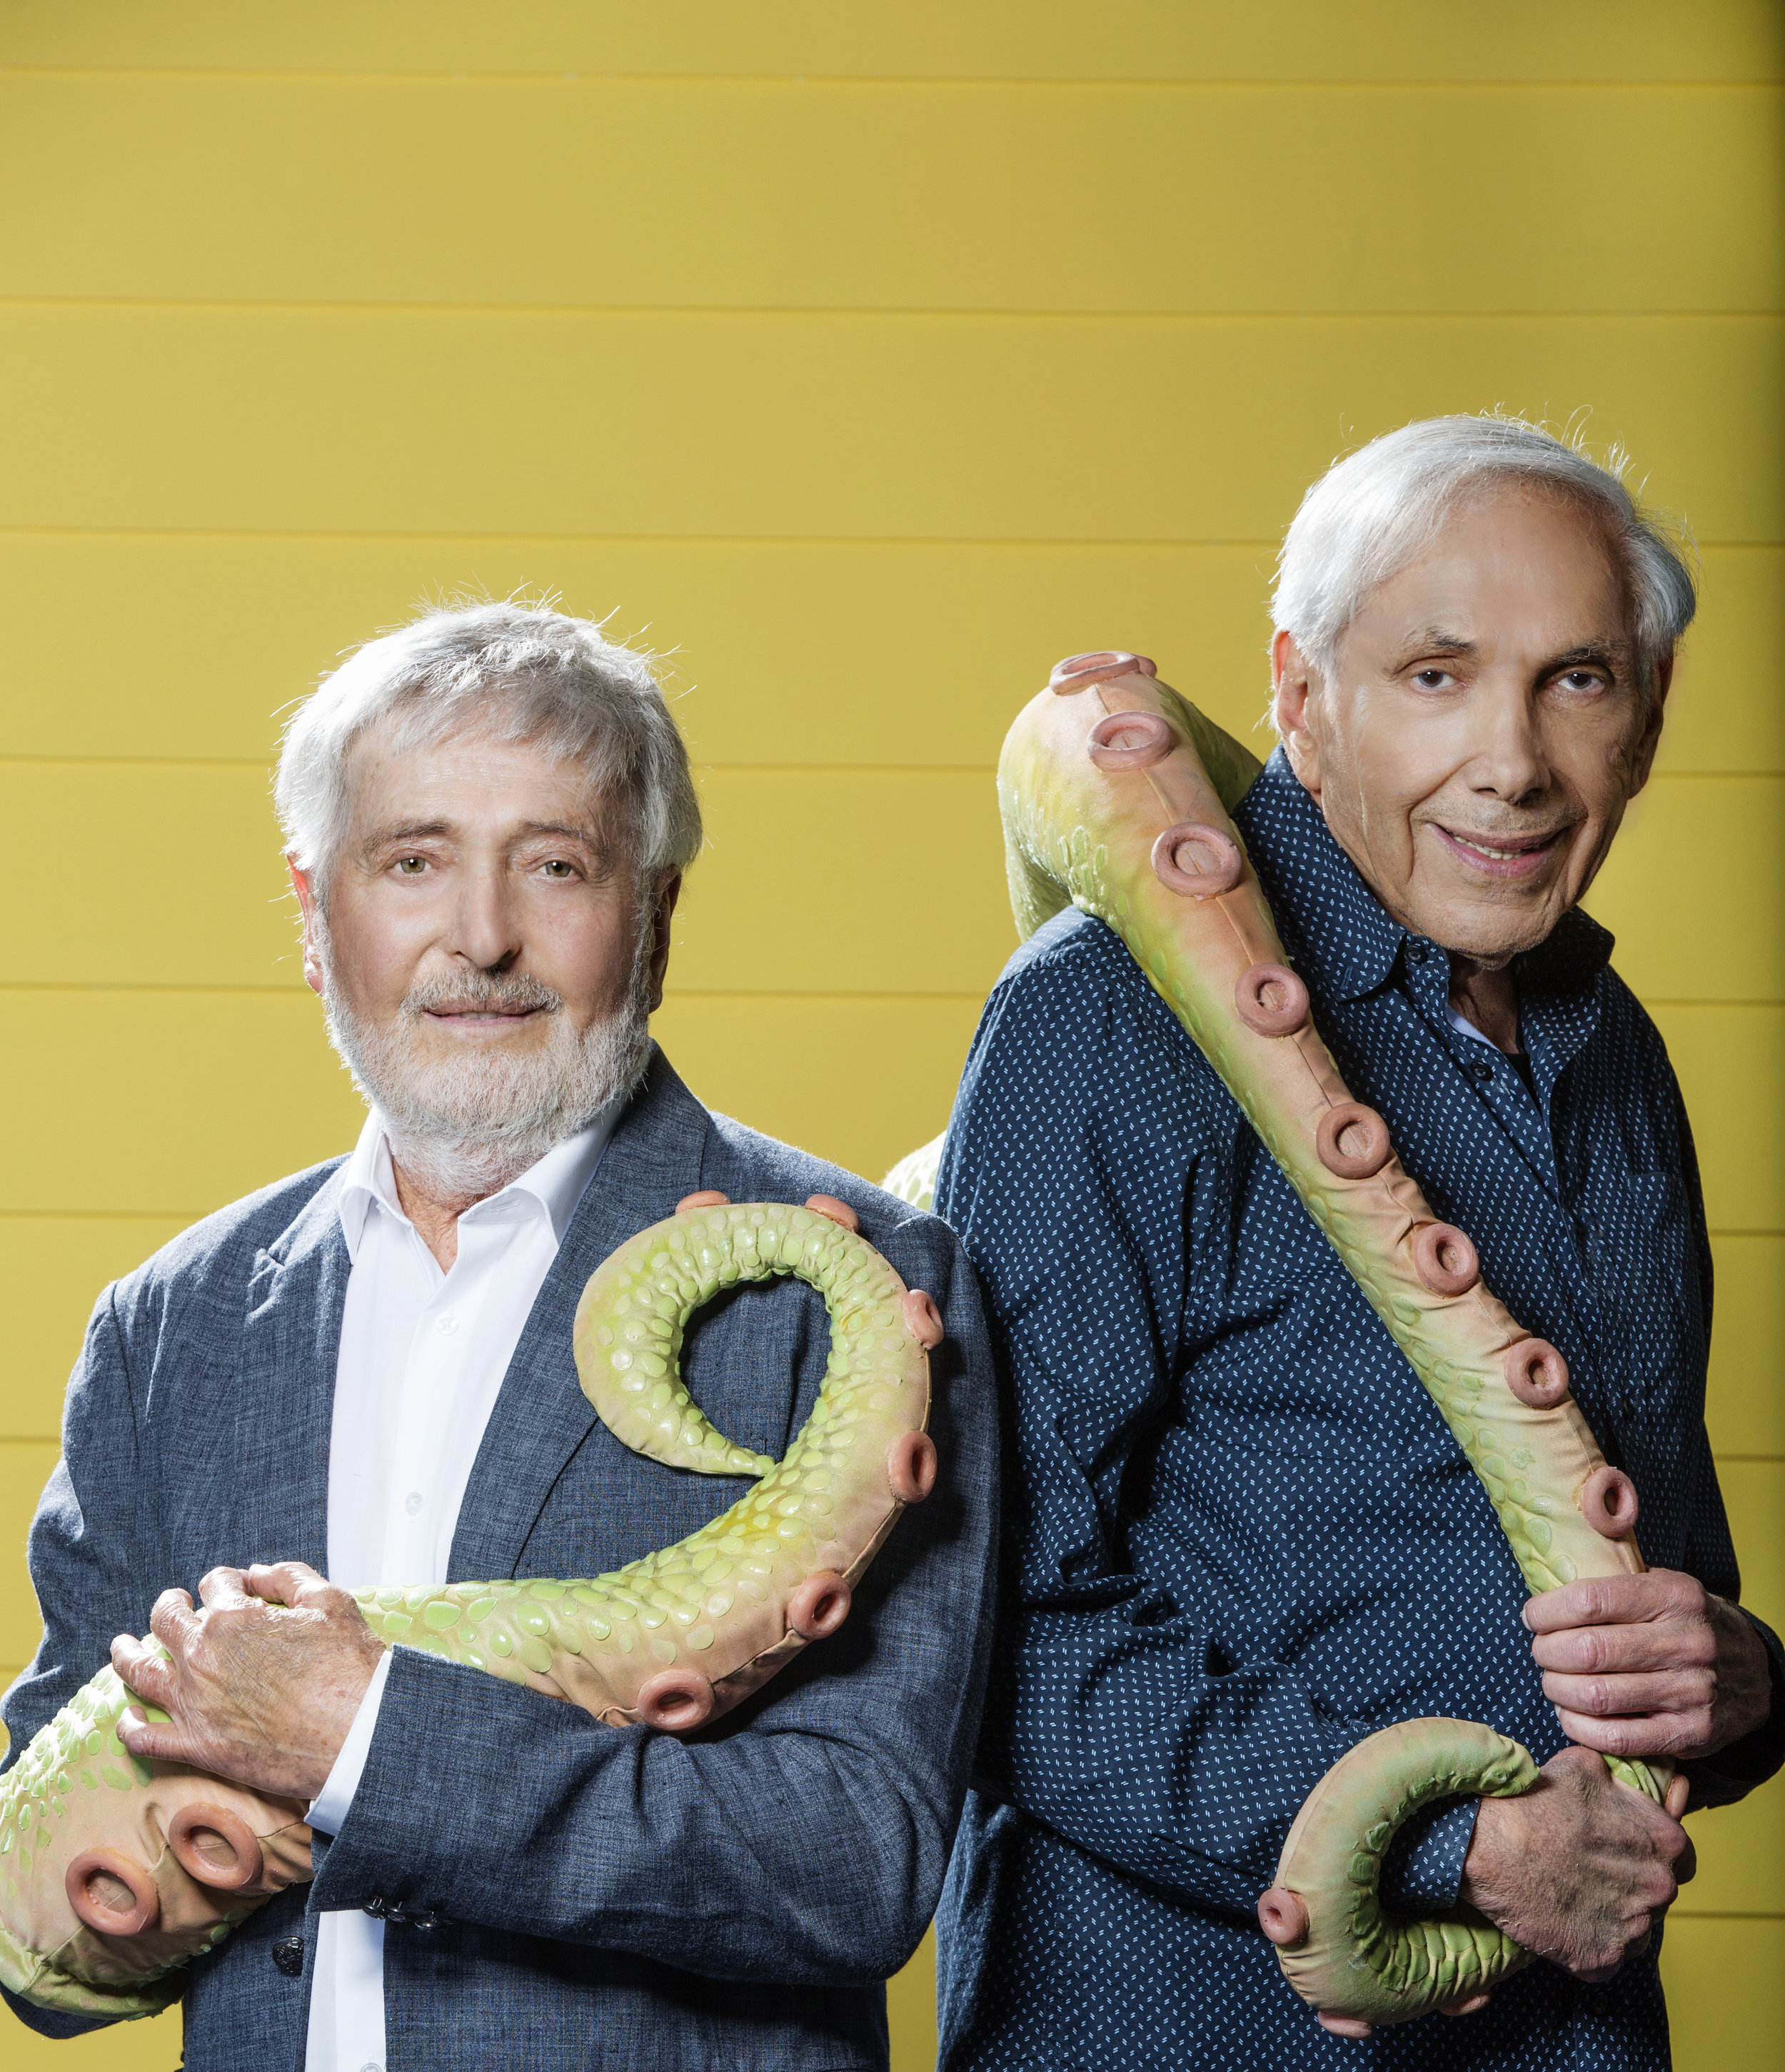 Sid and Marty Krofft | producers, puppeteers | The Wall Street Journal